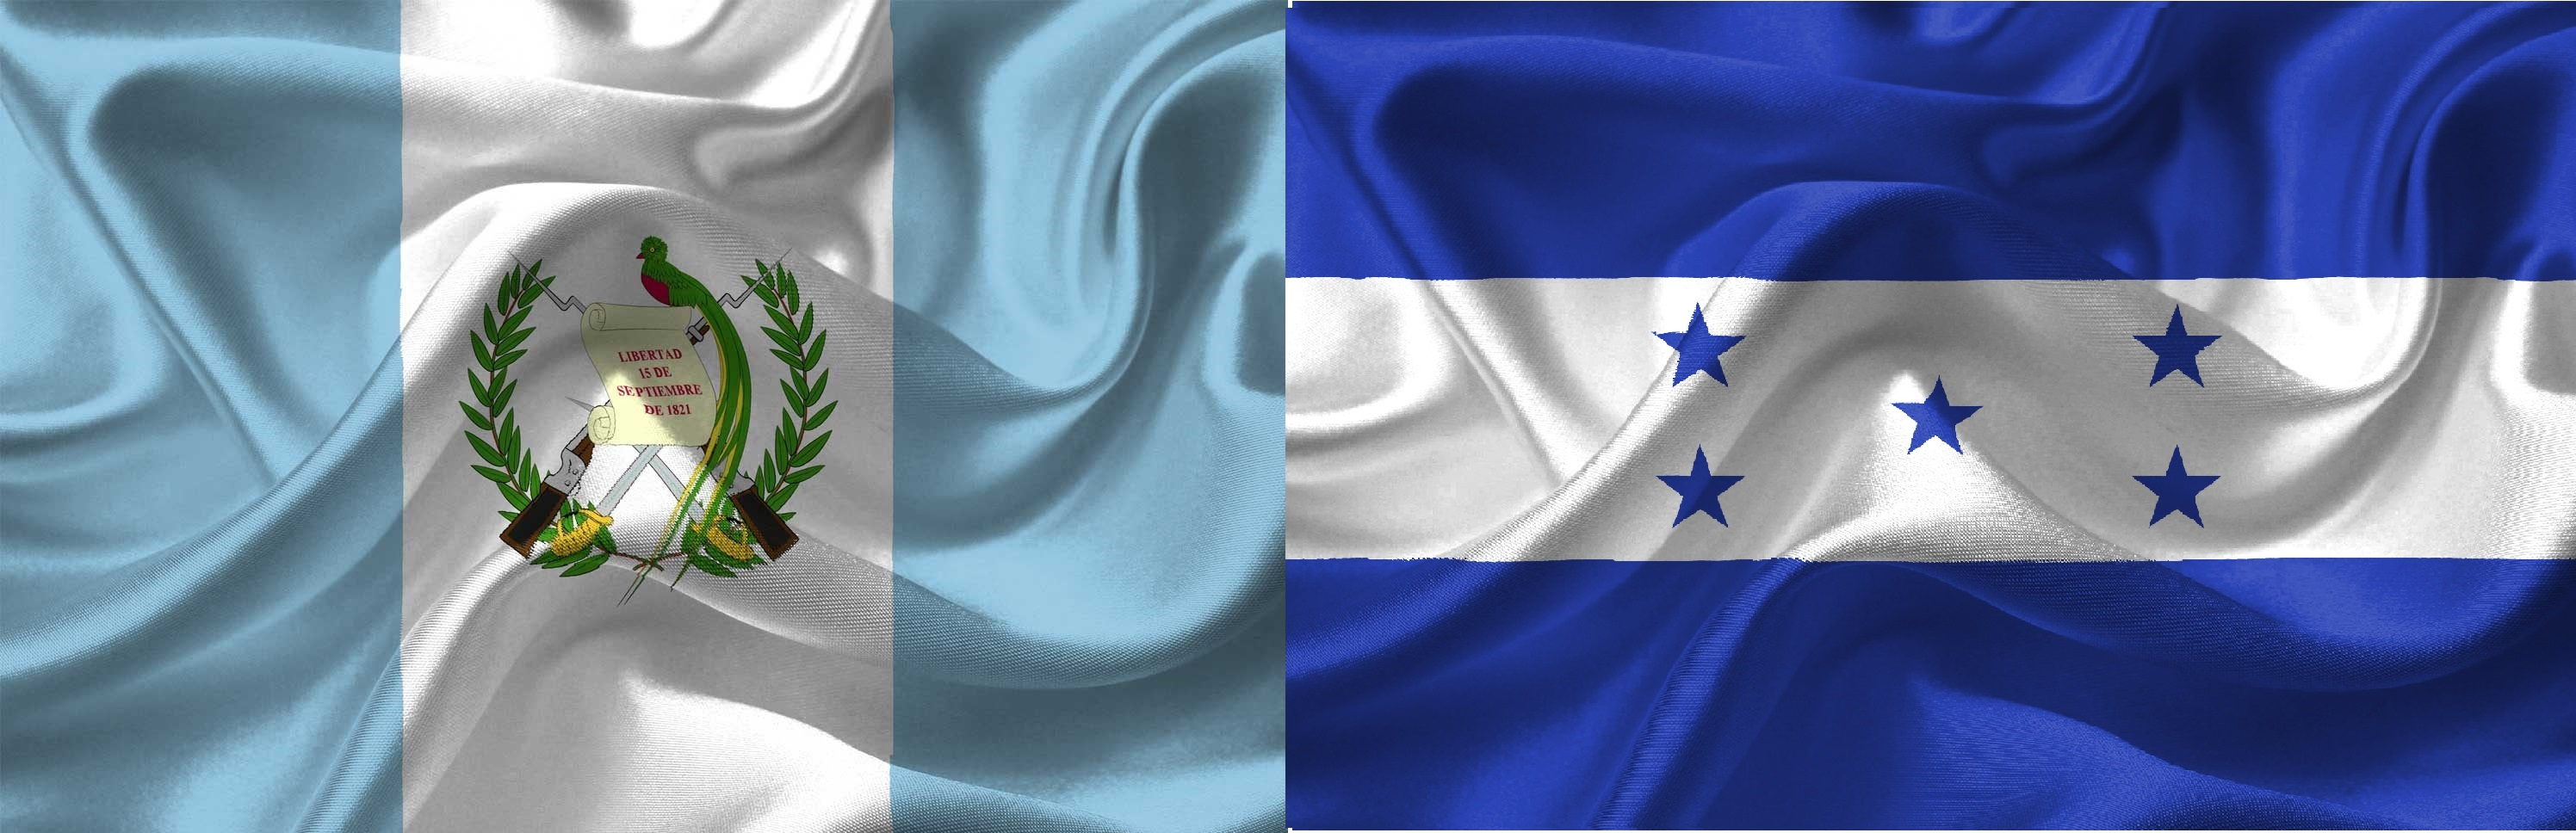 Consolidation of the Customs Union between Guatemala and Honduras